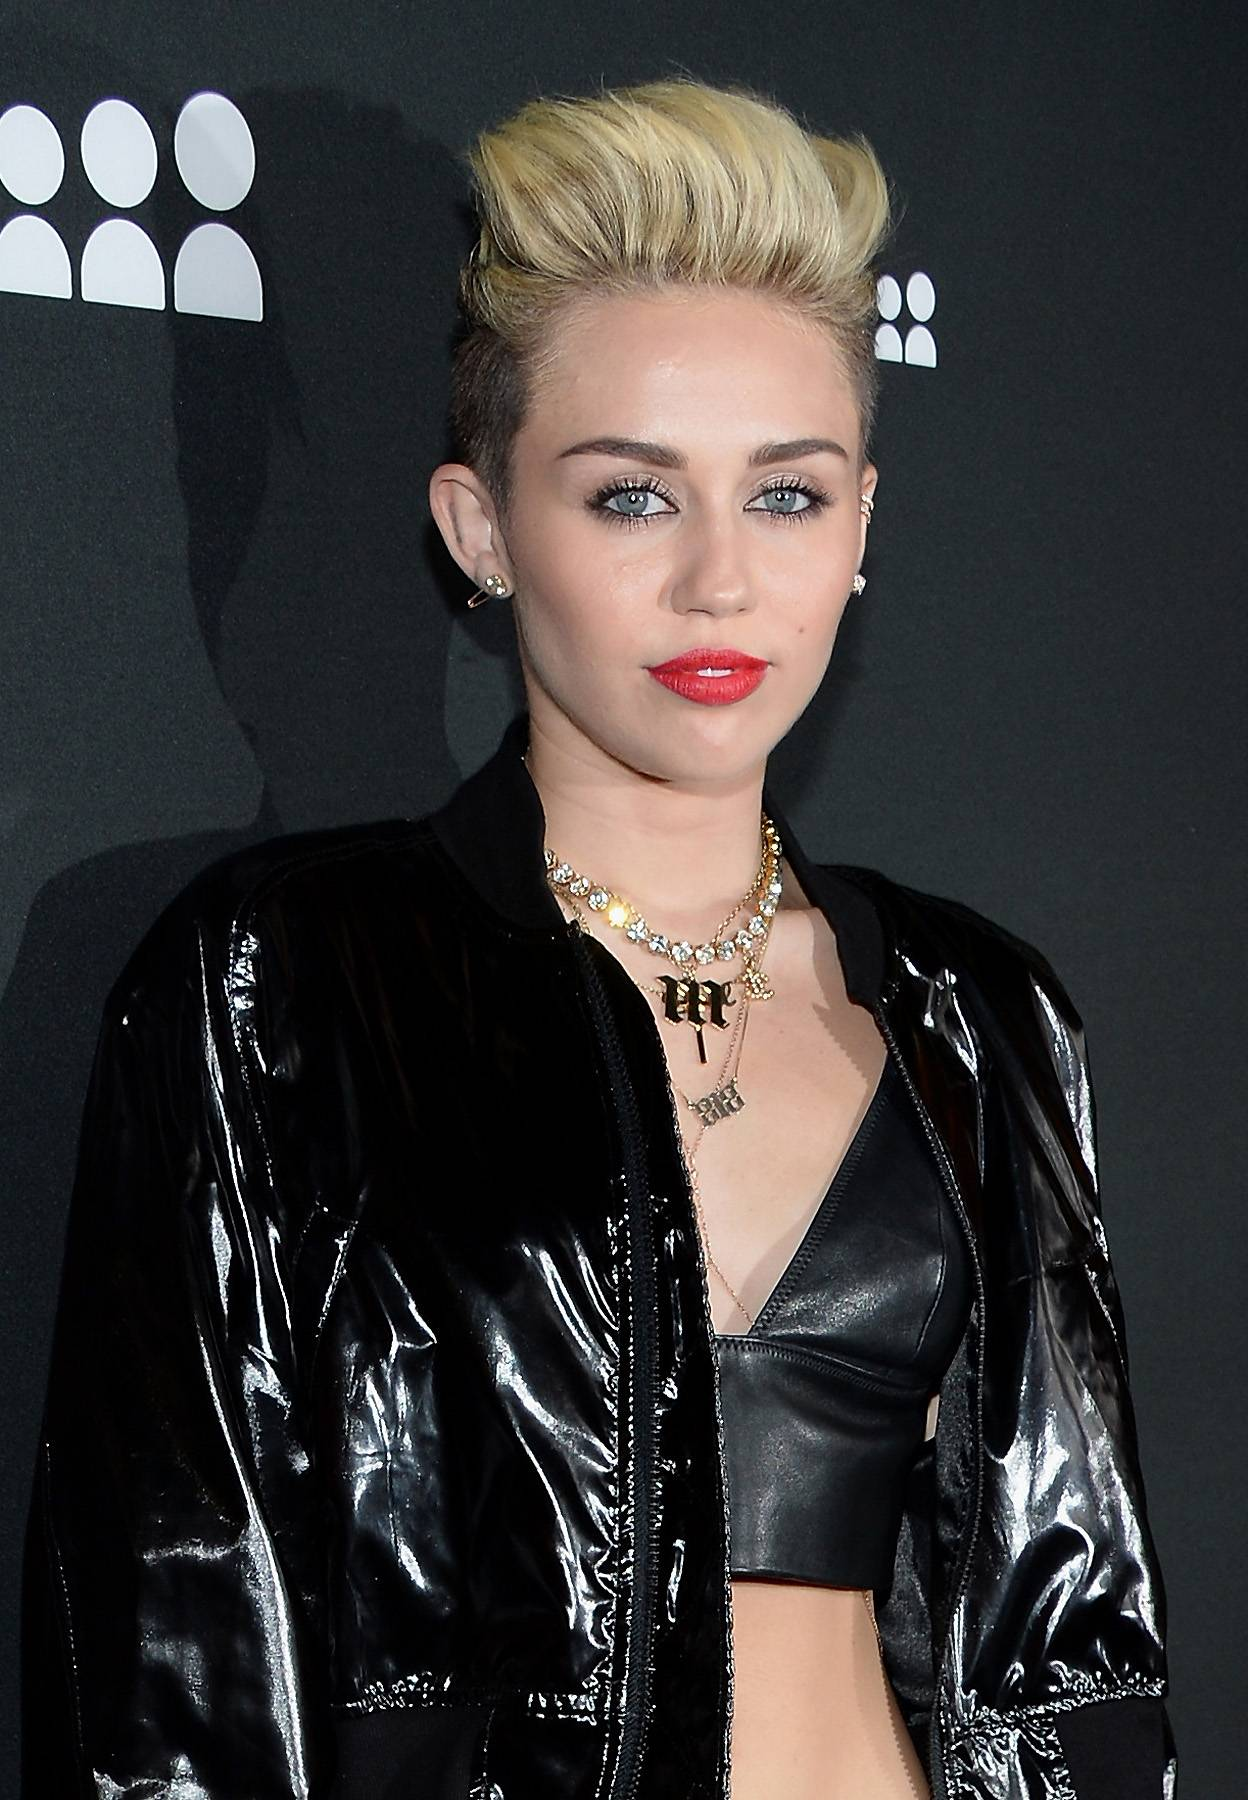 """Miley Threatens Her Father to 'Tell the Truth' - In recent years, Miley Cyrus has become notorious for being in the news. Once, the provocative pop singer aired some family dirty laundry on Twitter, threatening her father, Billy Ray Cyrus,to """"tell the truth"""" or she would. Weeks prior to her Twitter post, her dad had filed for divorce from Tish, his wife of 19 years.Tweet: """"@billyraycyrus since you won't reply to my texts I'll give you an hour [to] tell the truth or I'll tell it for you.""""(Photo: Jason Kempin/Getty Images for Myspace)"""